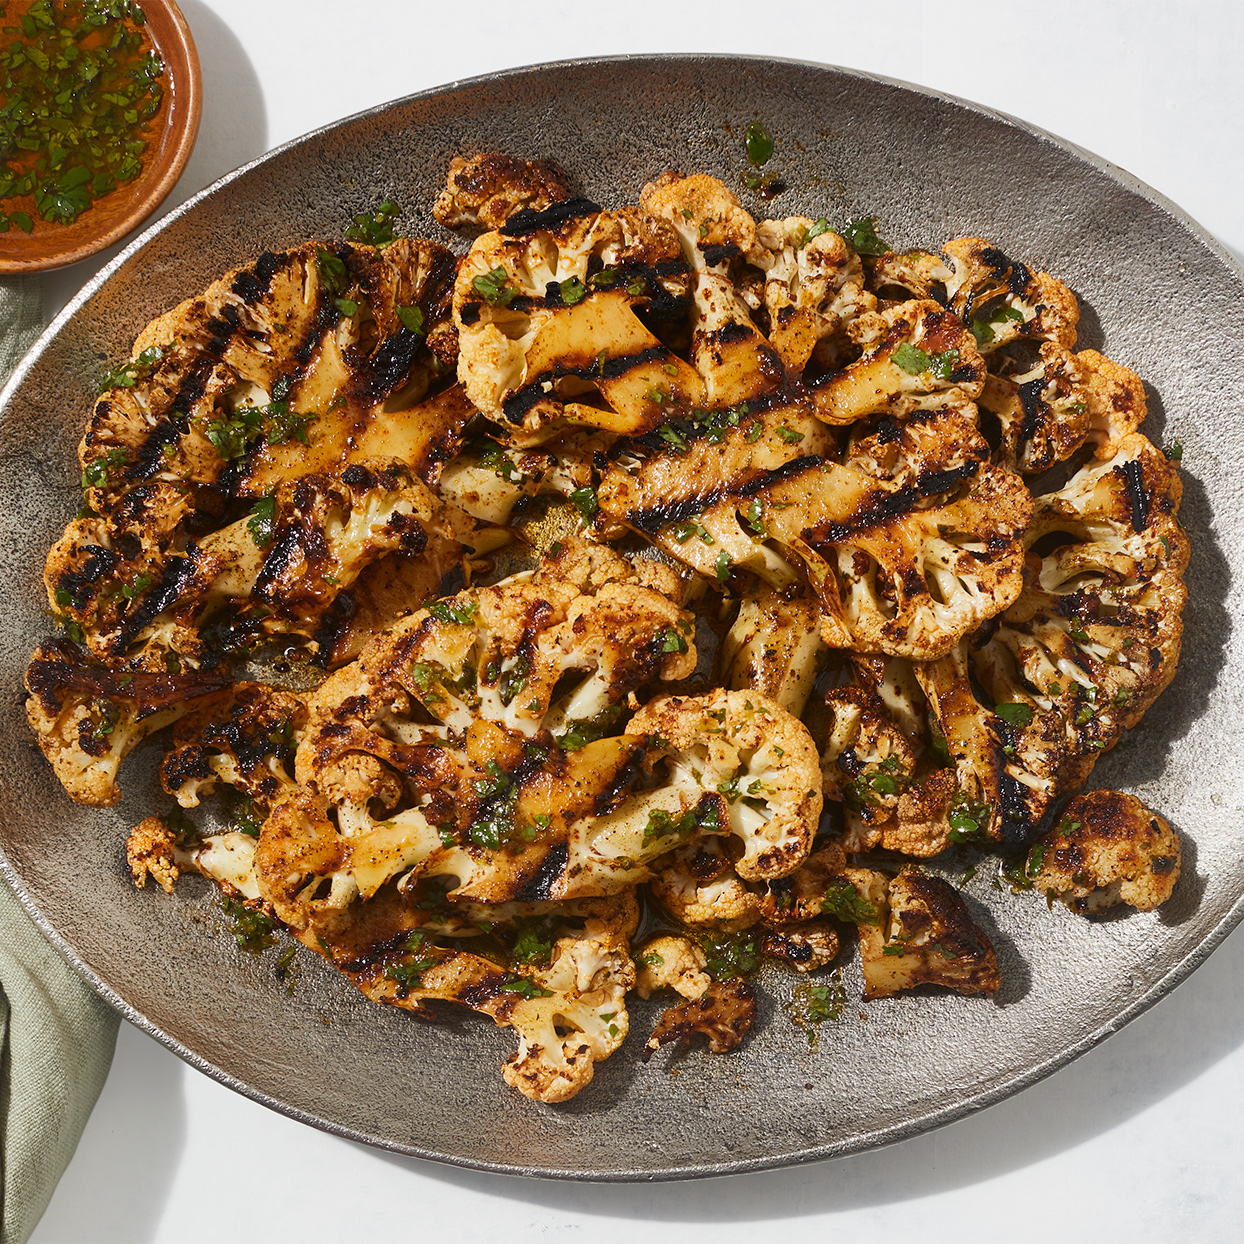 Cauliflower's round shape can be cut into slabs or florets for the grill. Here, it's grilled both ways after being rubbed with a blend of spicy seasonings and basted with a fresh cilantro-lime vinaigrette. Source: Diabetic Living Magazine, Summer 2020